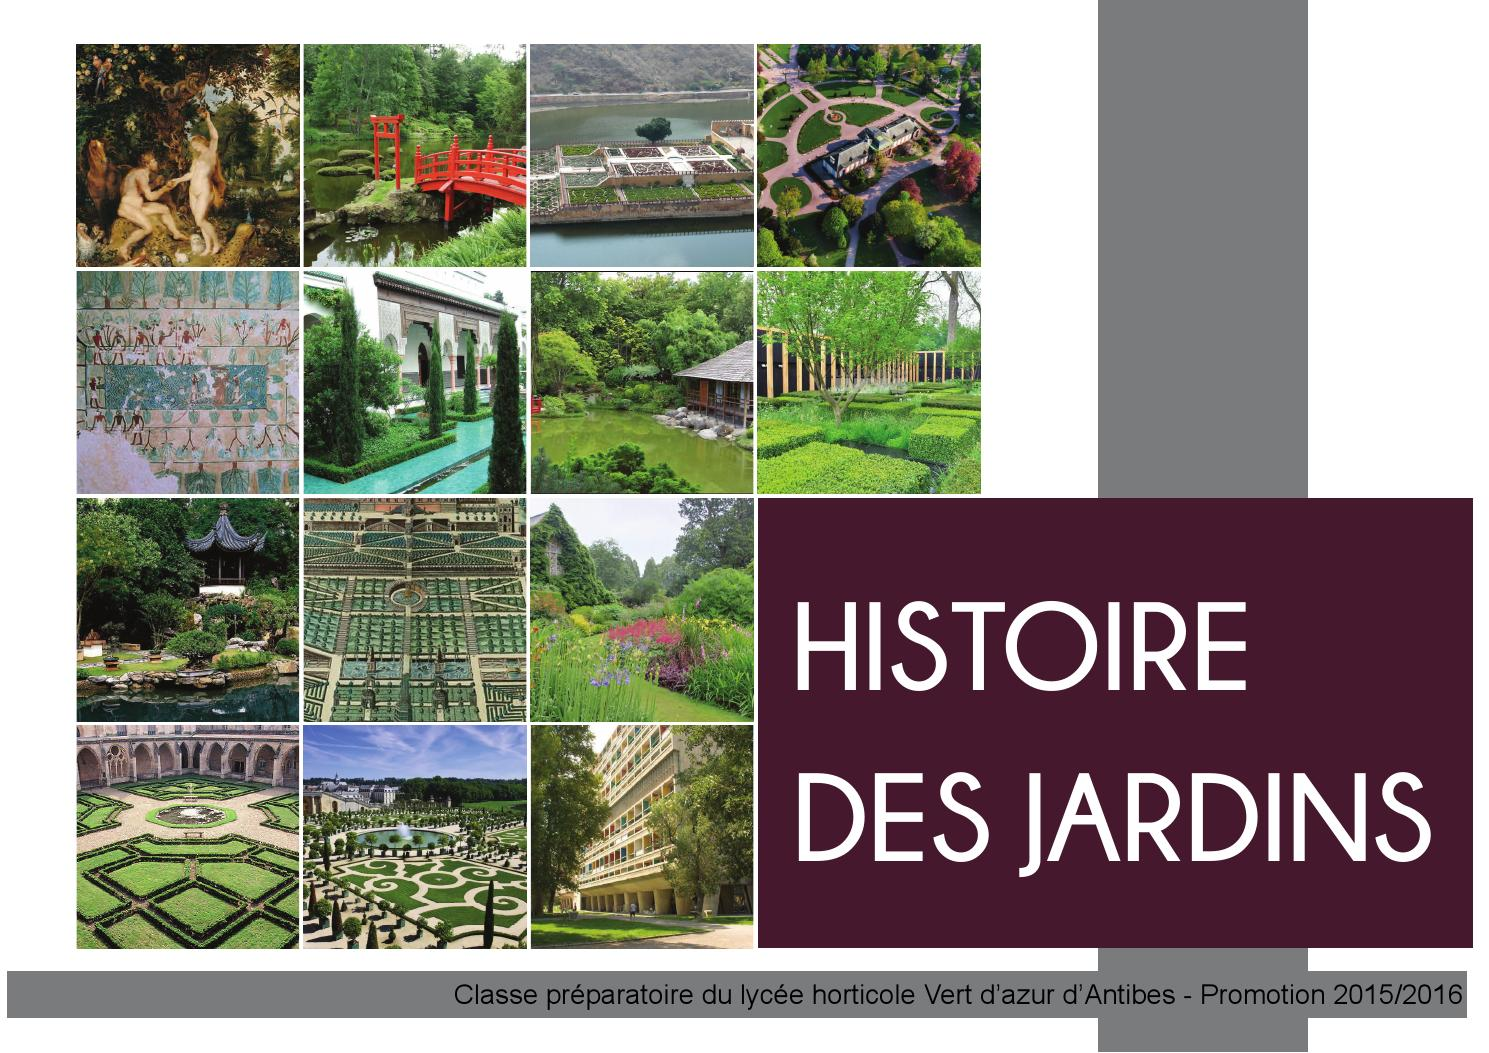 Dossier histoire des jardins by cl ment bigot issuu for Jardin anglais histoire